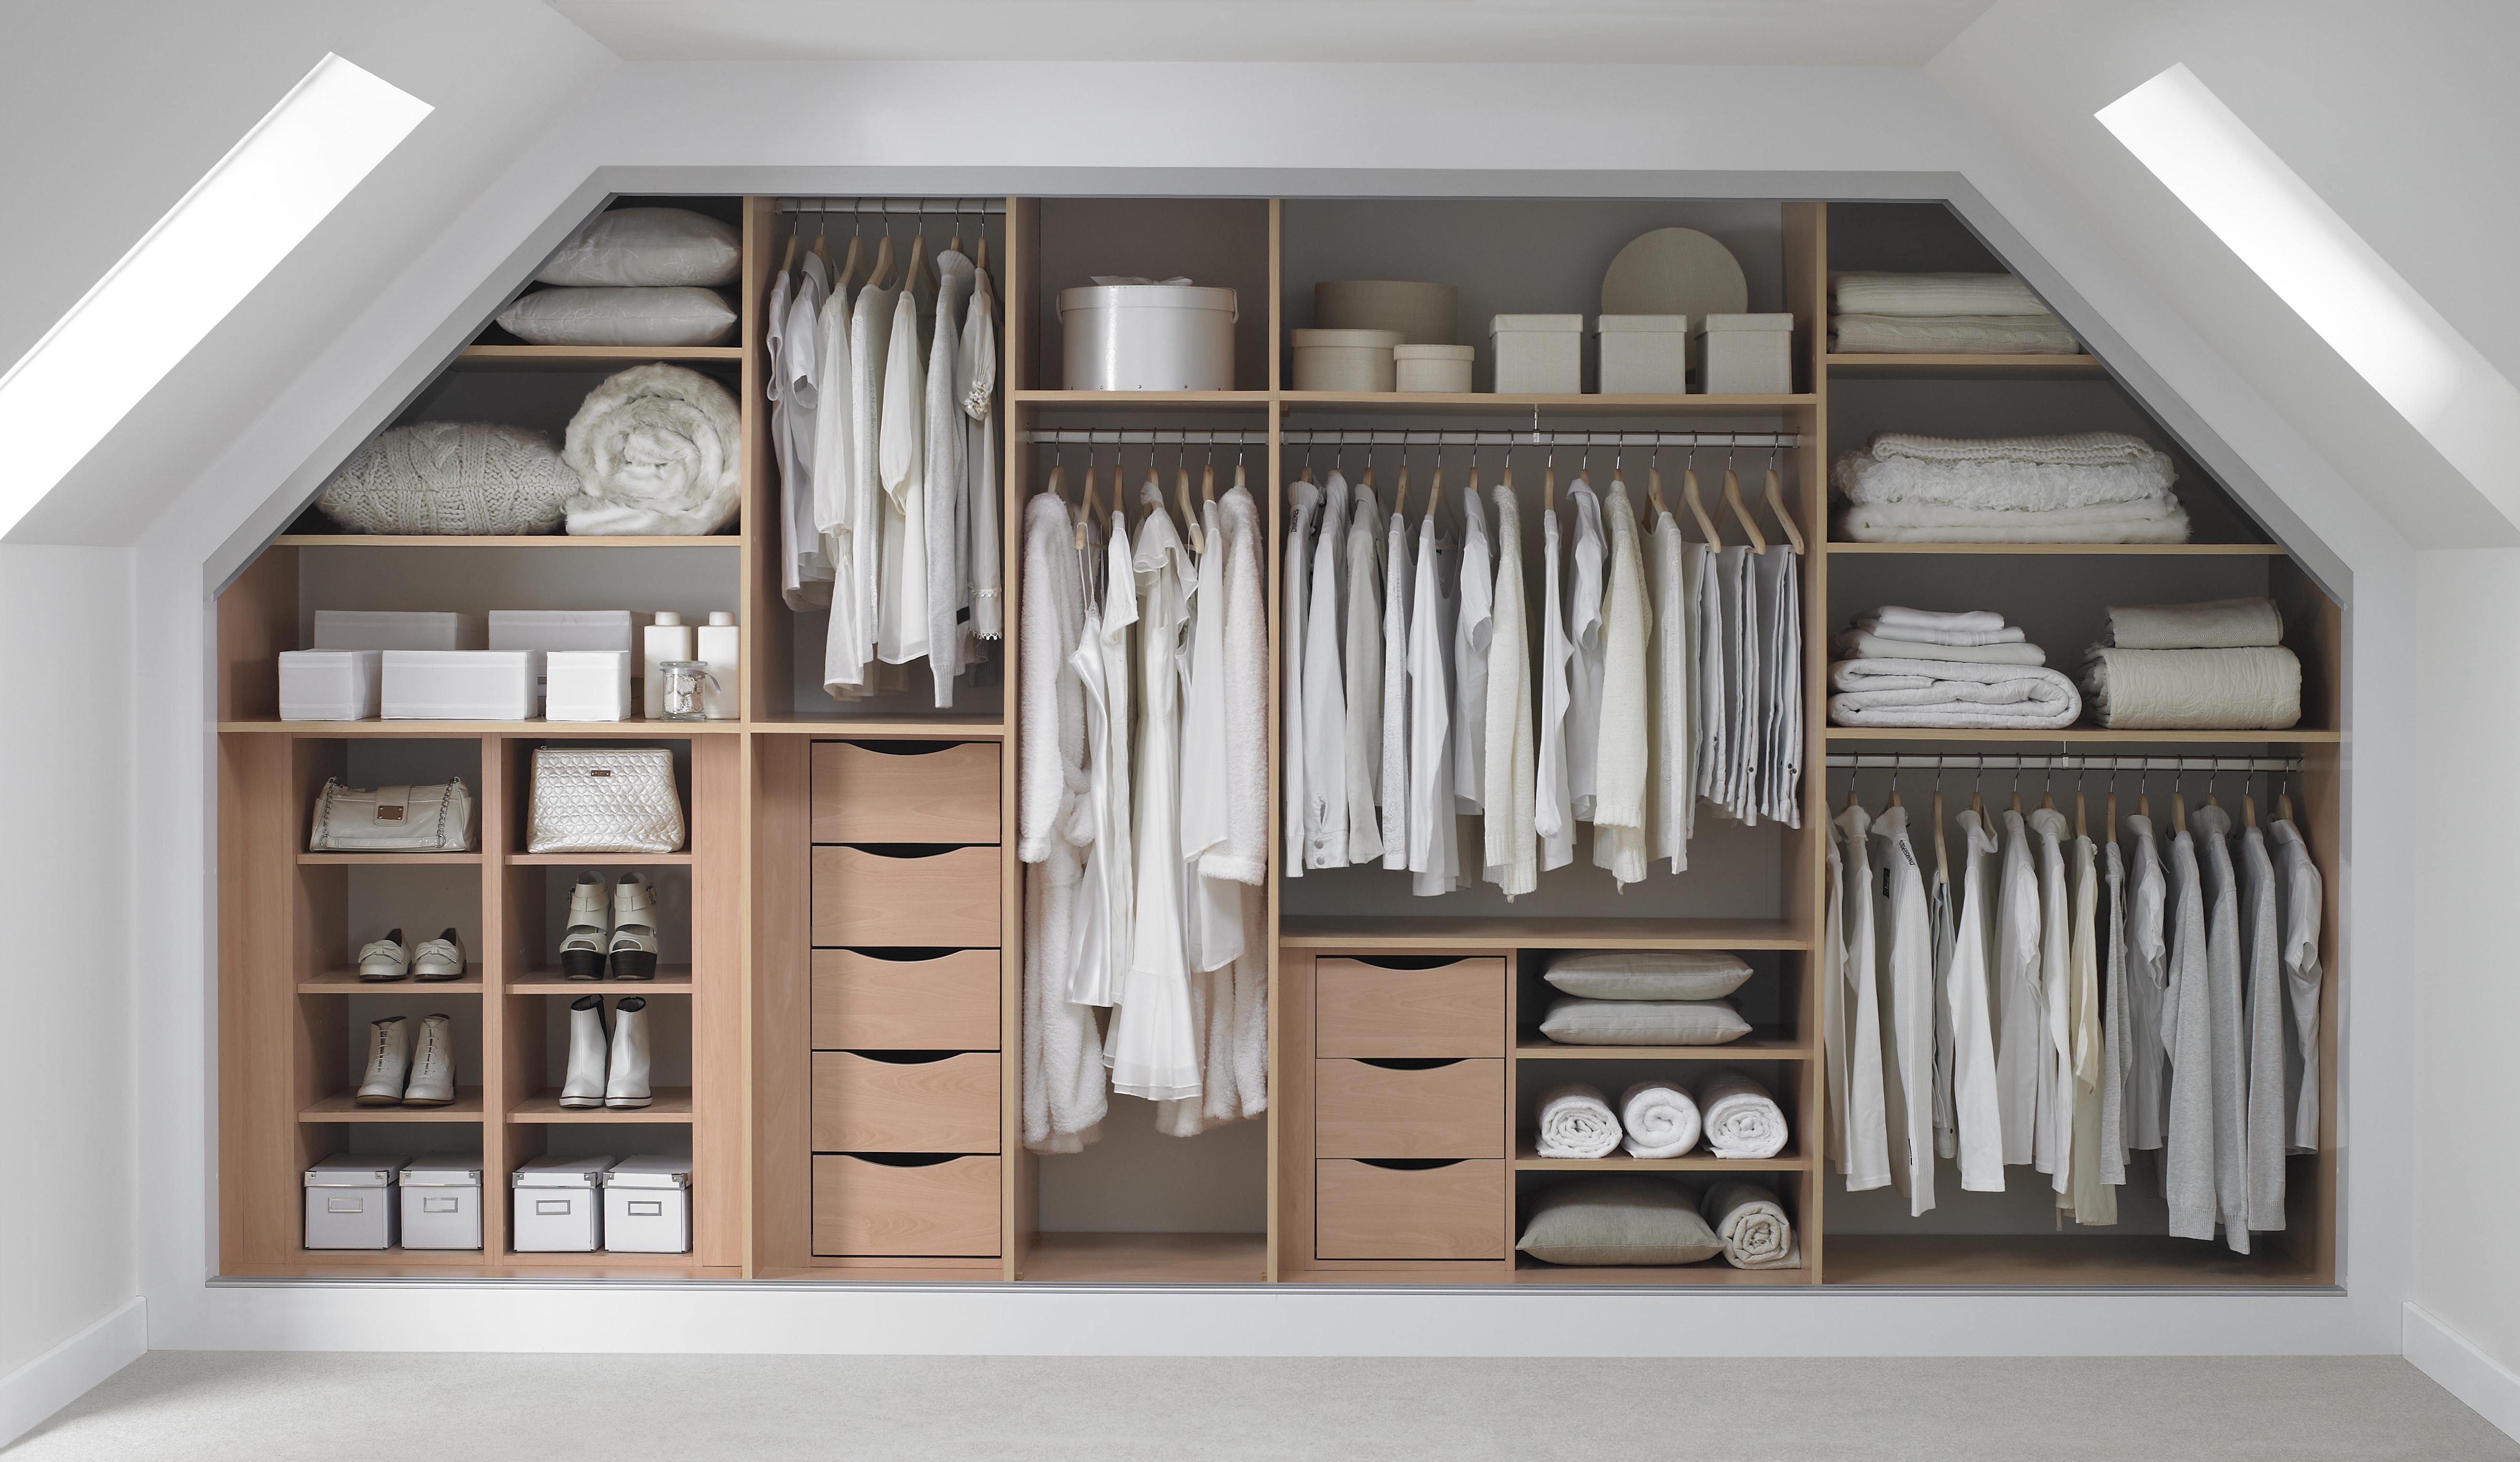 Bedroom design ideas for awkward spaces. Built in wardrobe ideas. Attic bedroom inspiration. Clever storage solutions for bedrooms. Wardrobes. Interiors. Bedroom design.